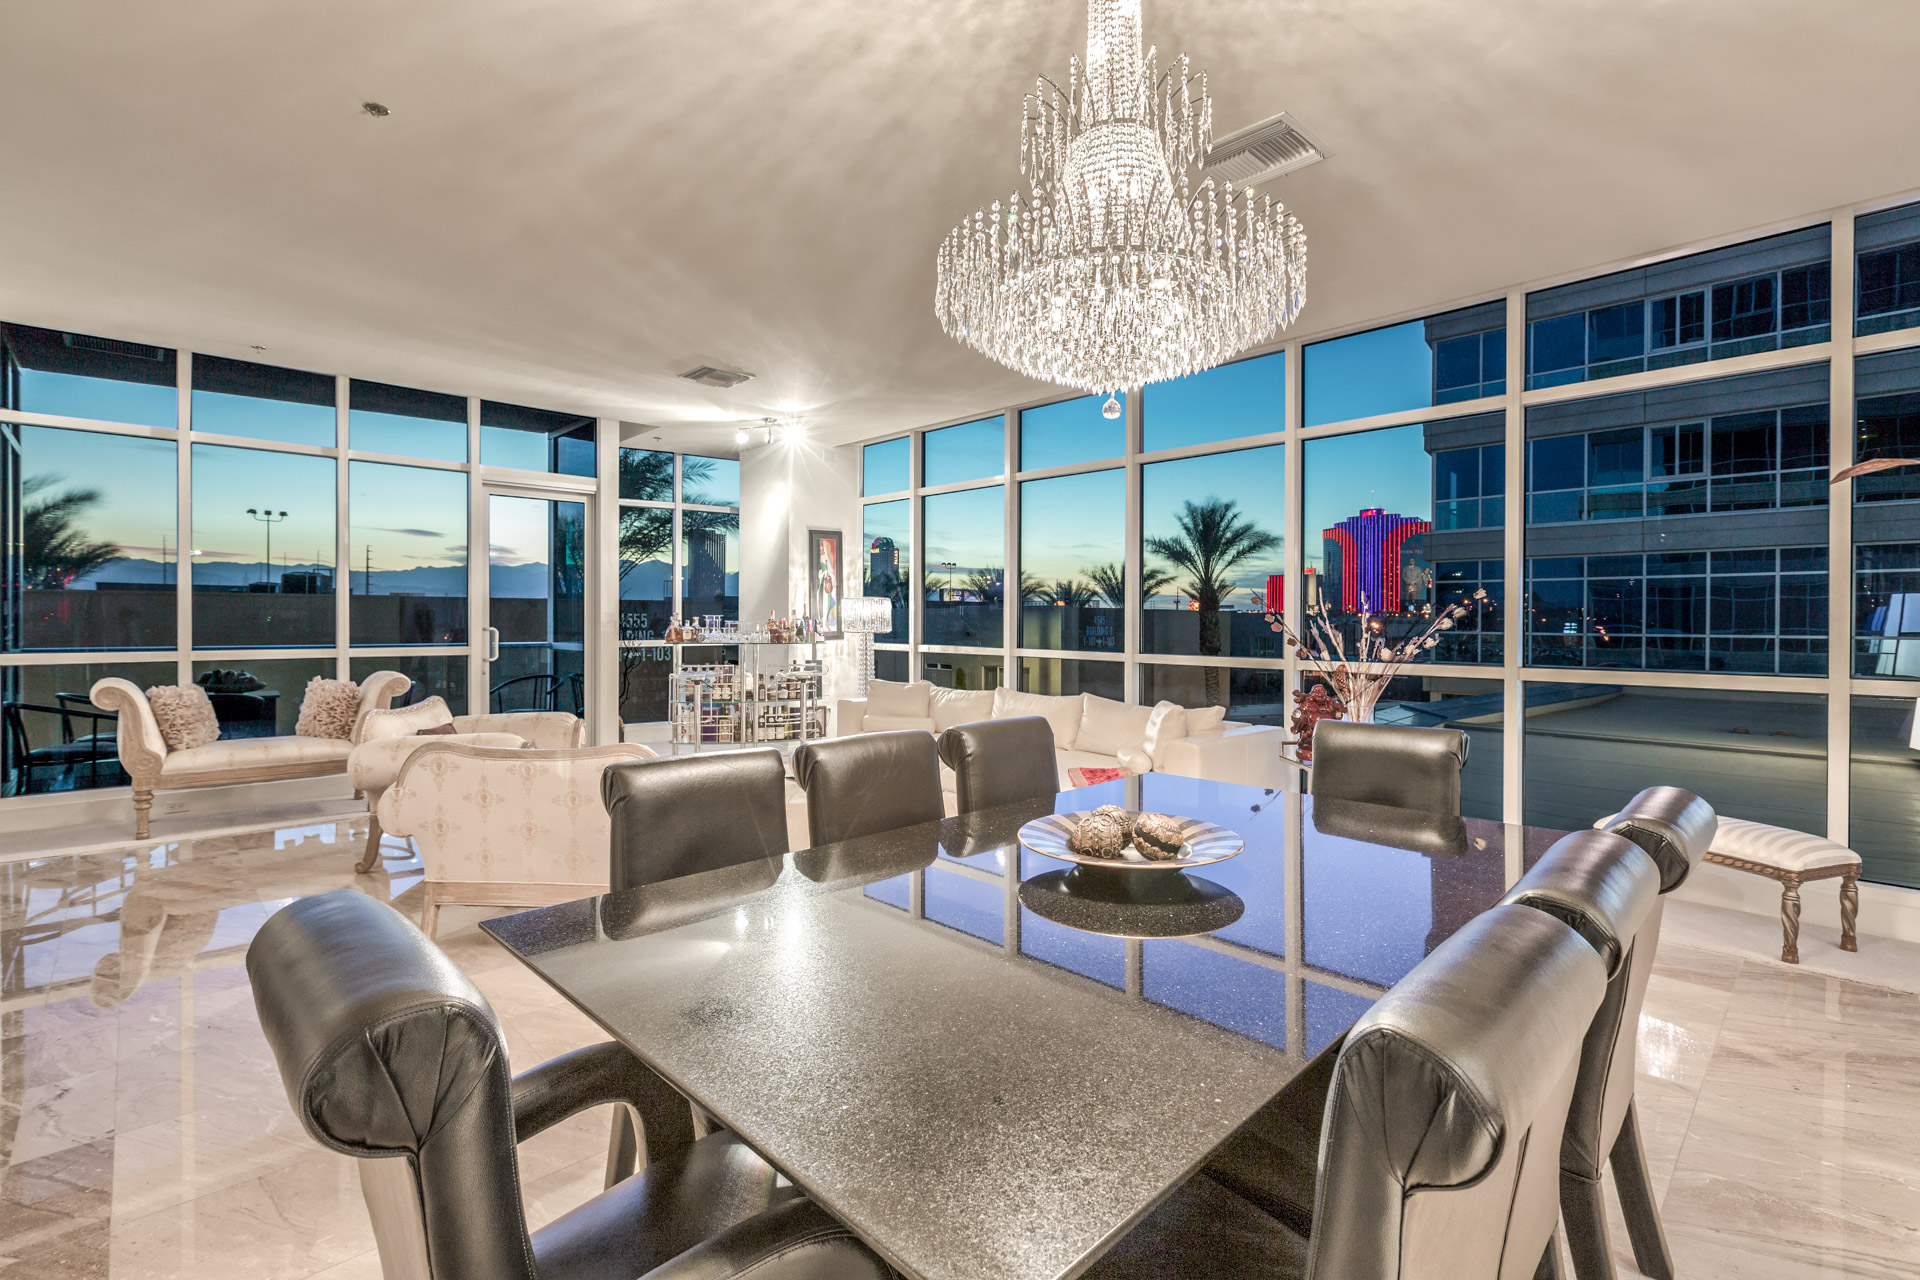 Five Key Points To Consider When Buying A Las Vegas High Rise Condo